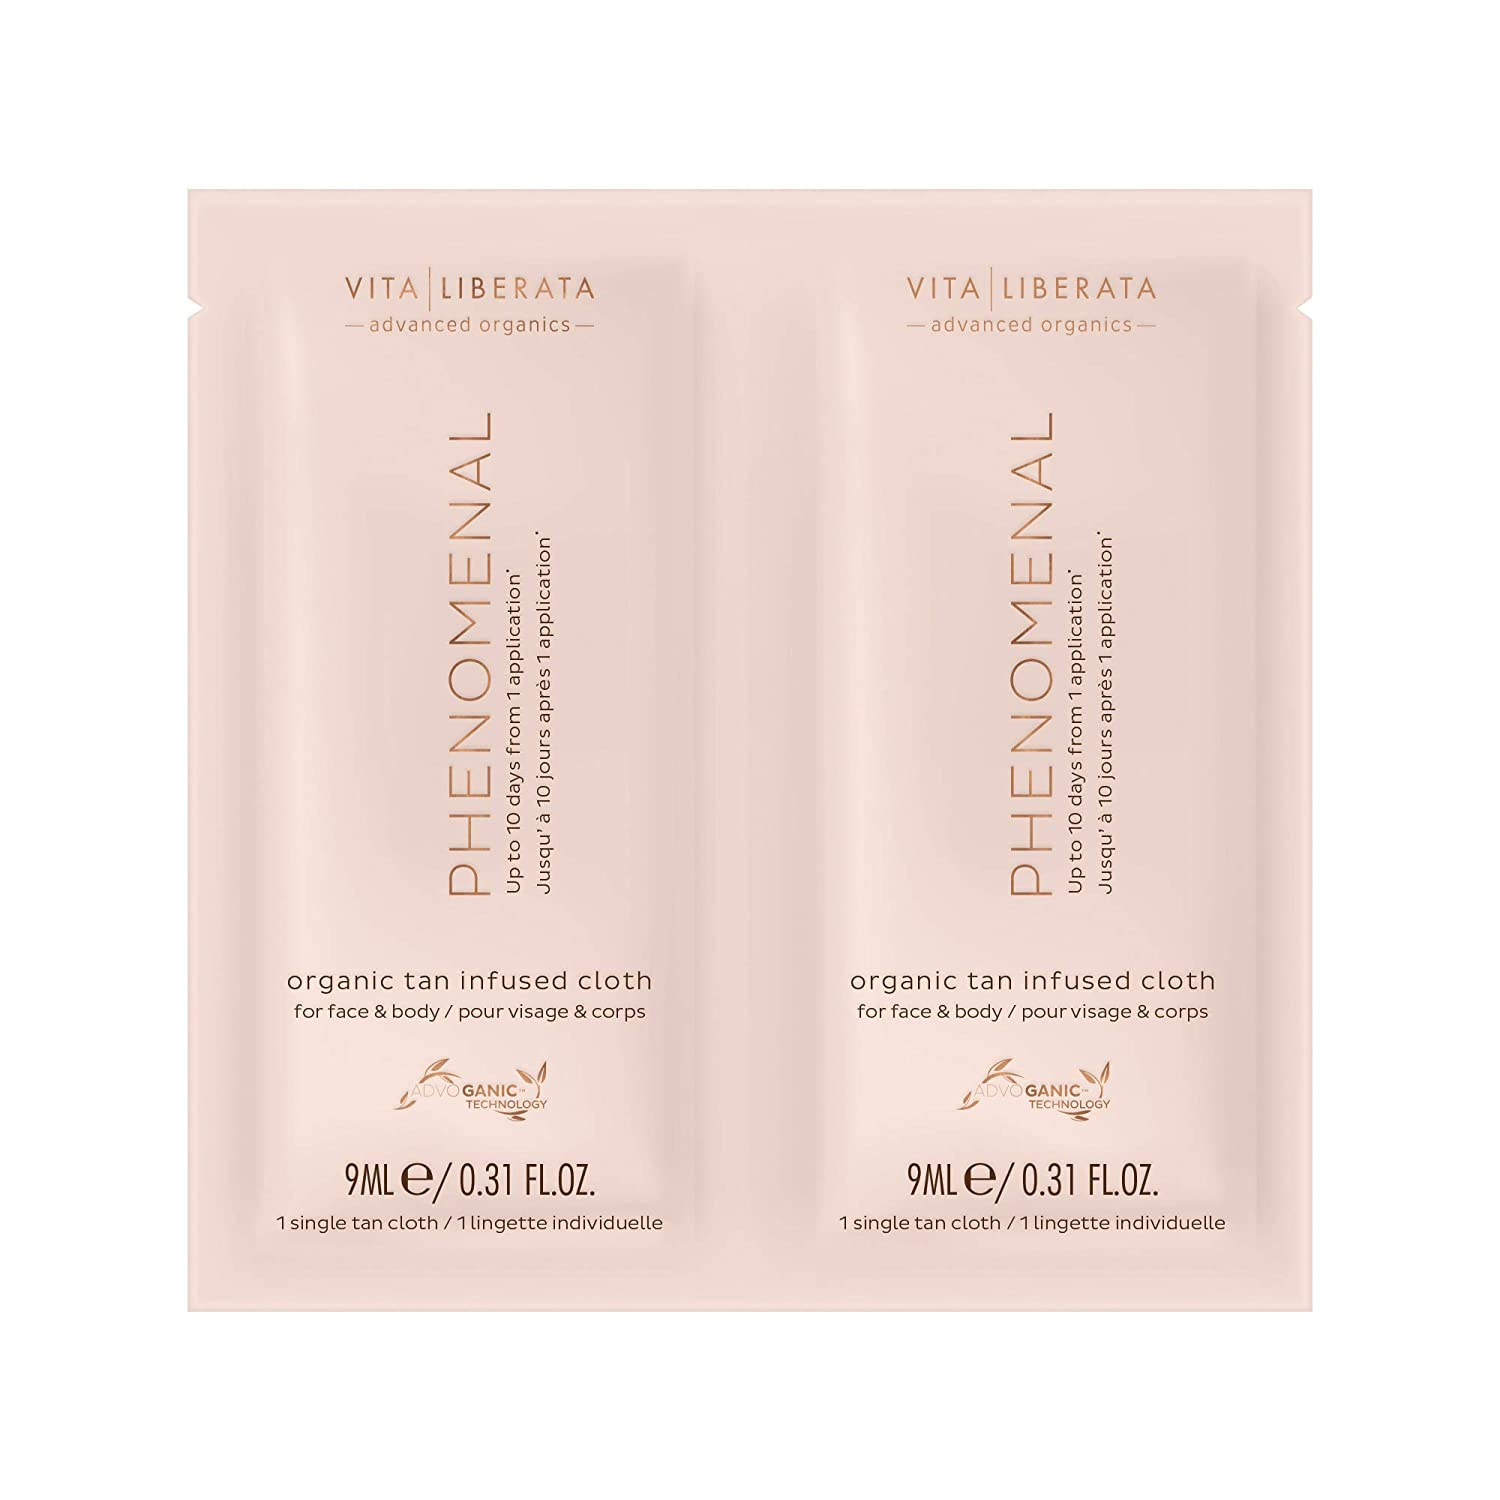 Vita Liberata Phenomenal Organic Tan Infused Cloths 8 Pack, 67 g.